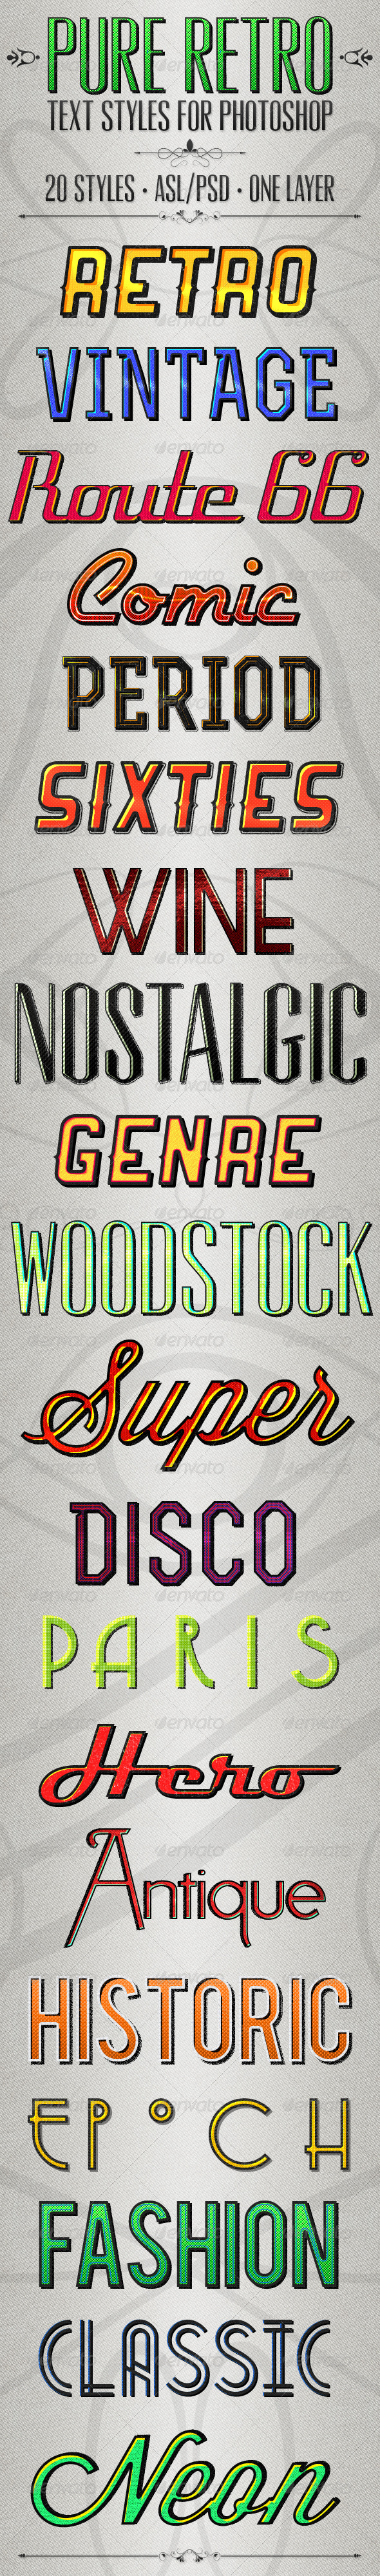 GraphicRiver Pure Retro Text Styles 4519652